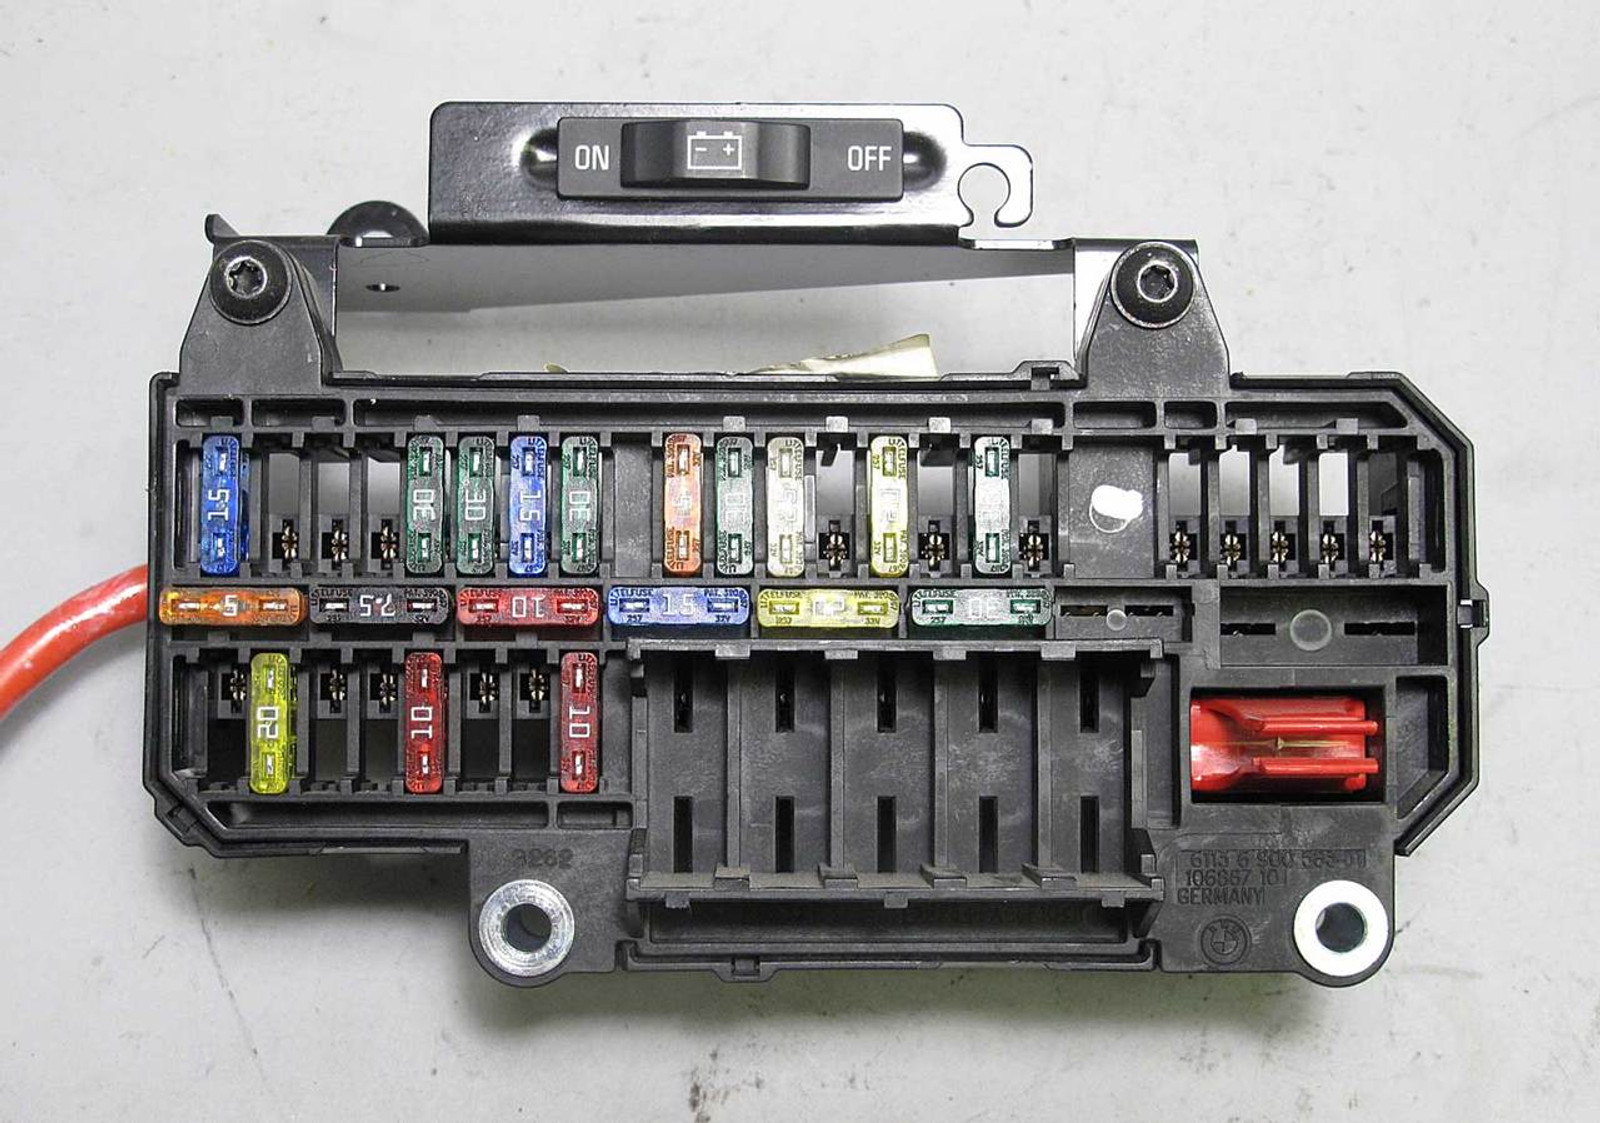 02 bmw 745i fuse diagram schematics online E65 Fuse Diagram